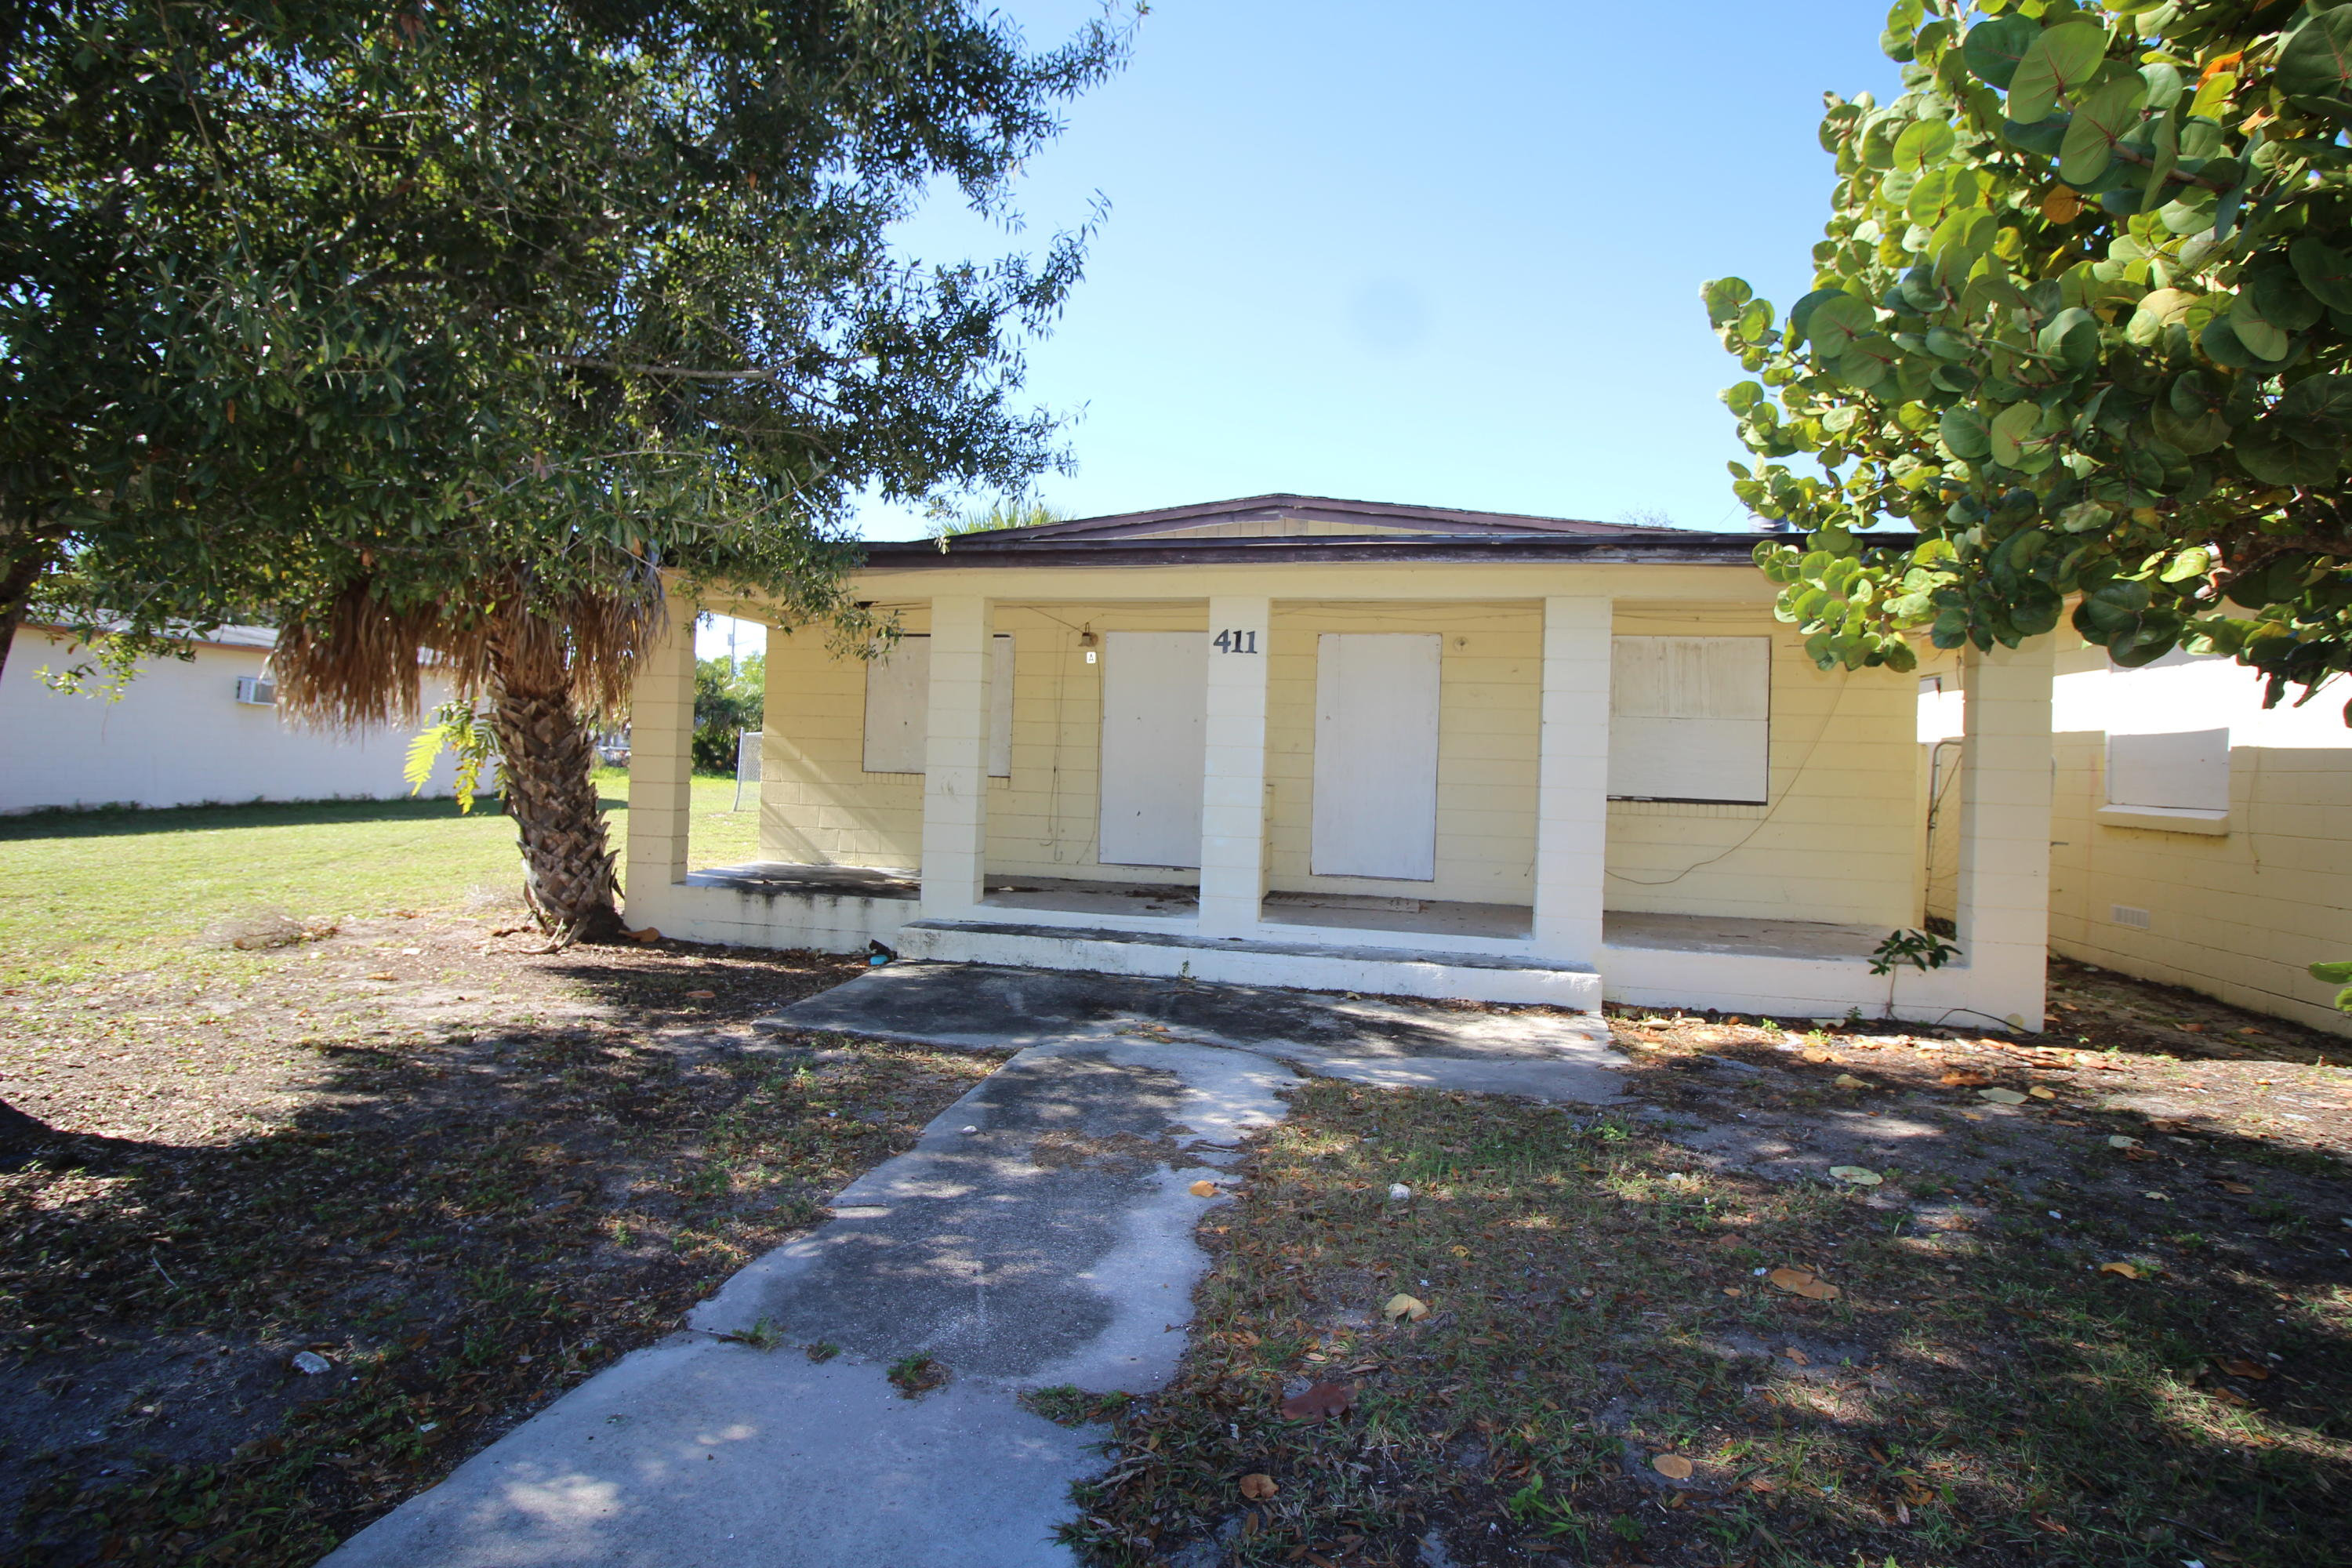 411 N 9th Street, Fort Pierce, FL 34950